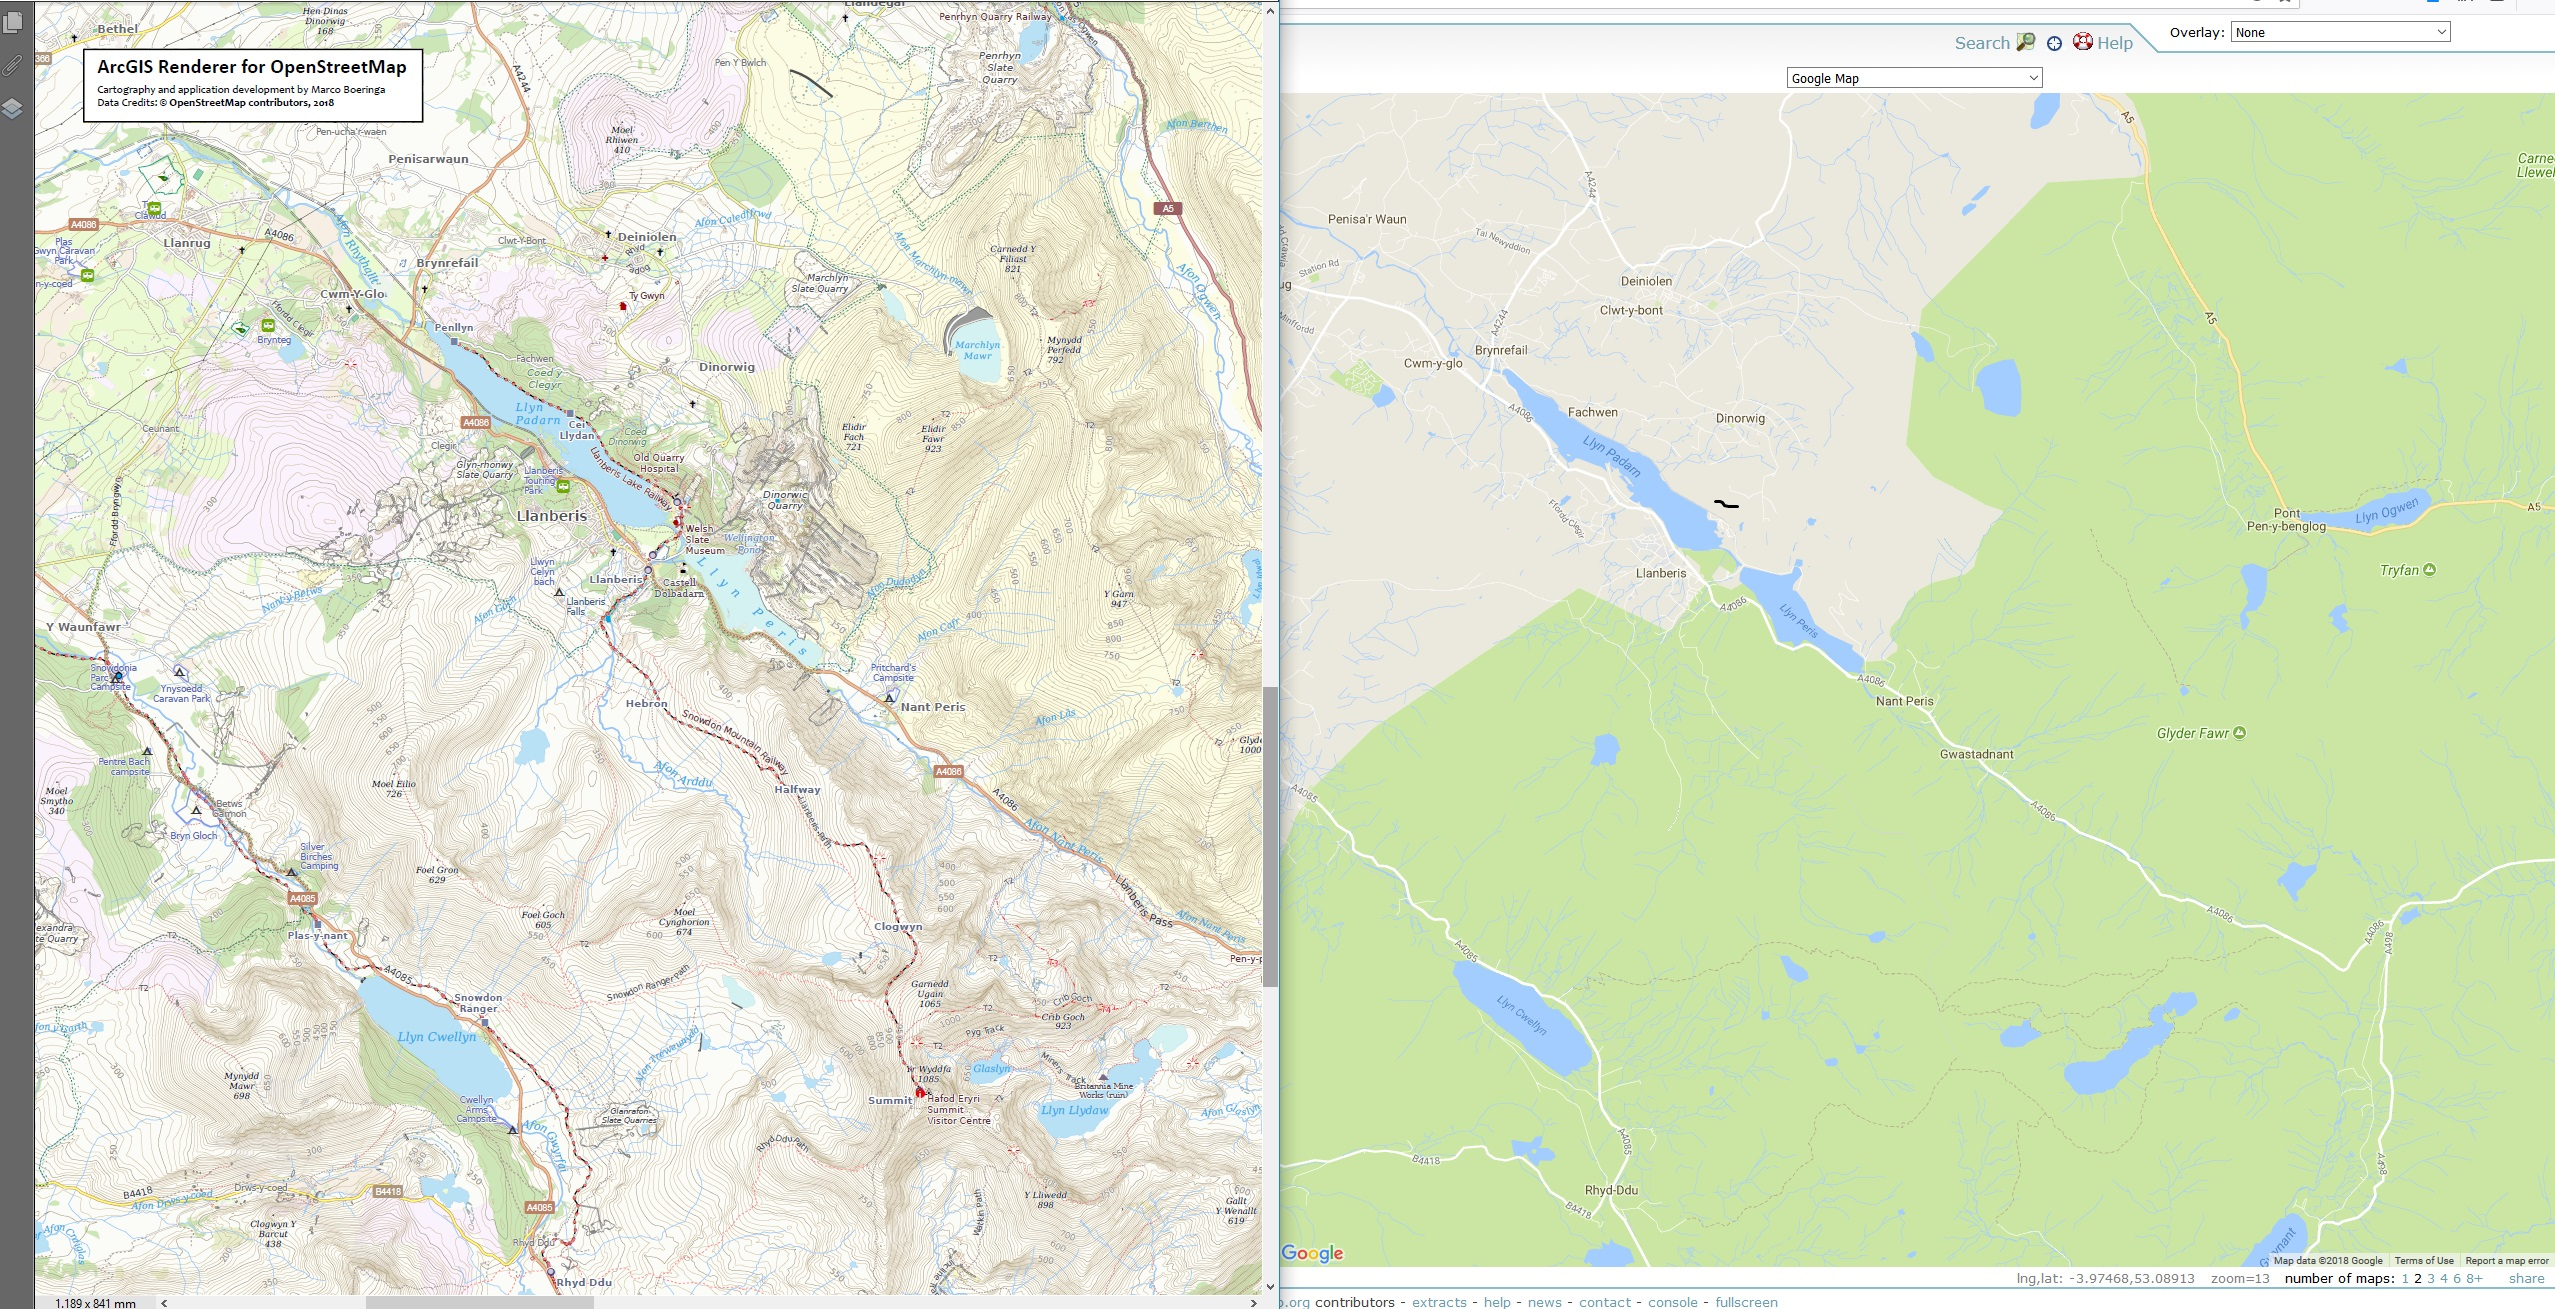 ArcGIS Renderer for OpenStreetMap - United Kingdom - Snowdonia